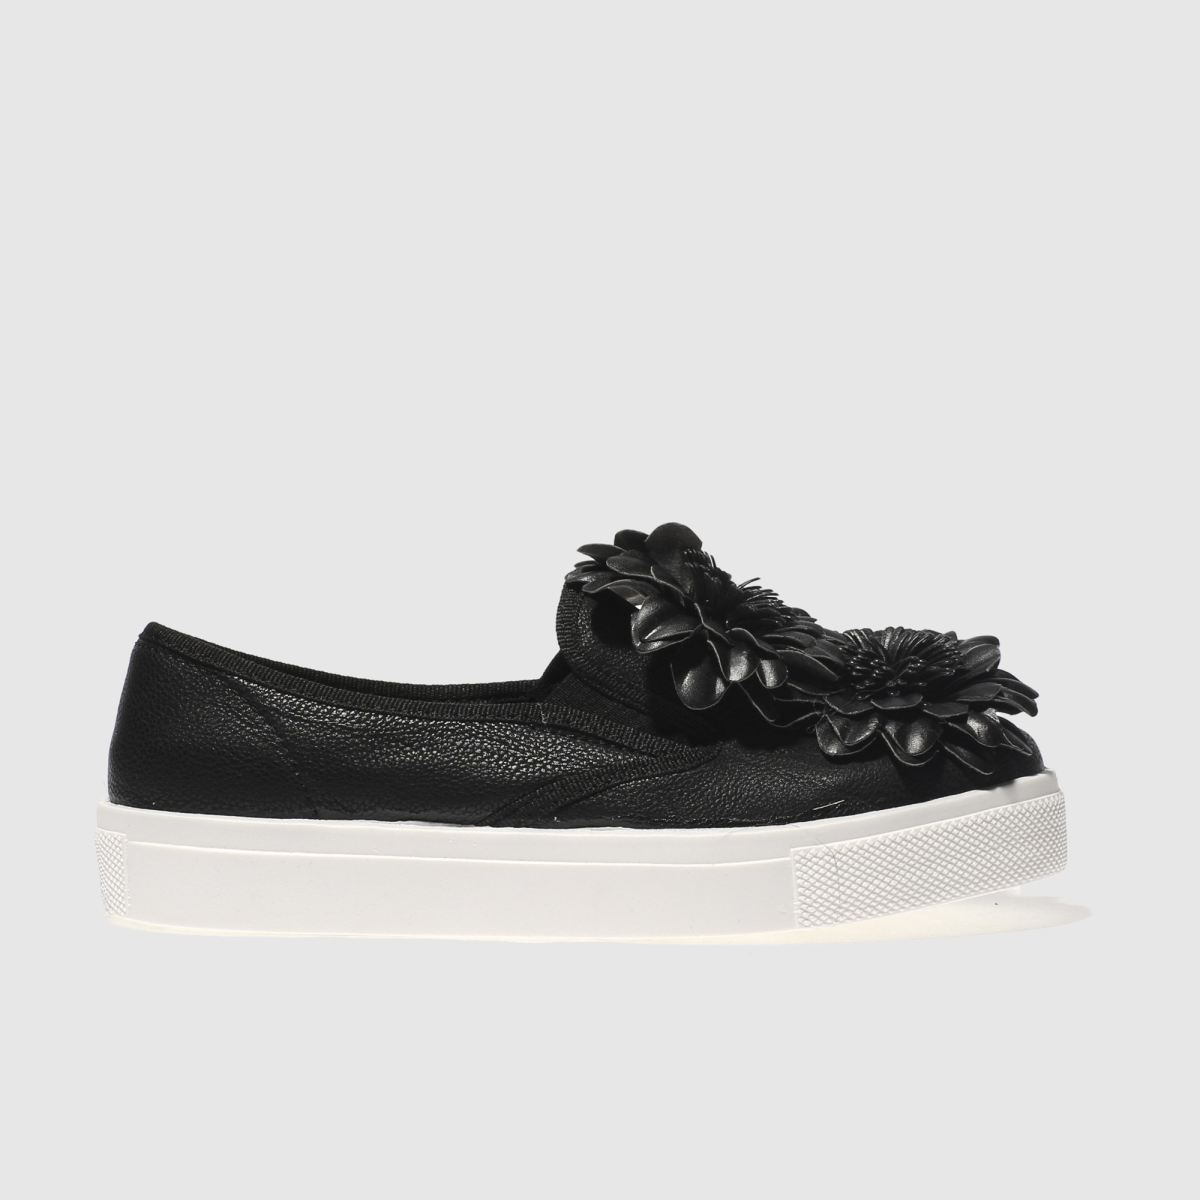 schuh Schuh Black Awesome Flowers Flat Shoes